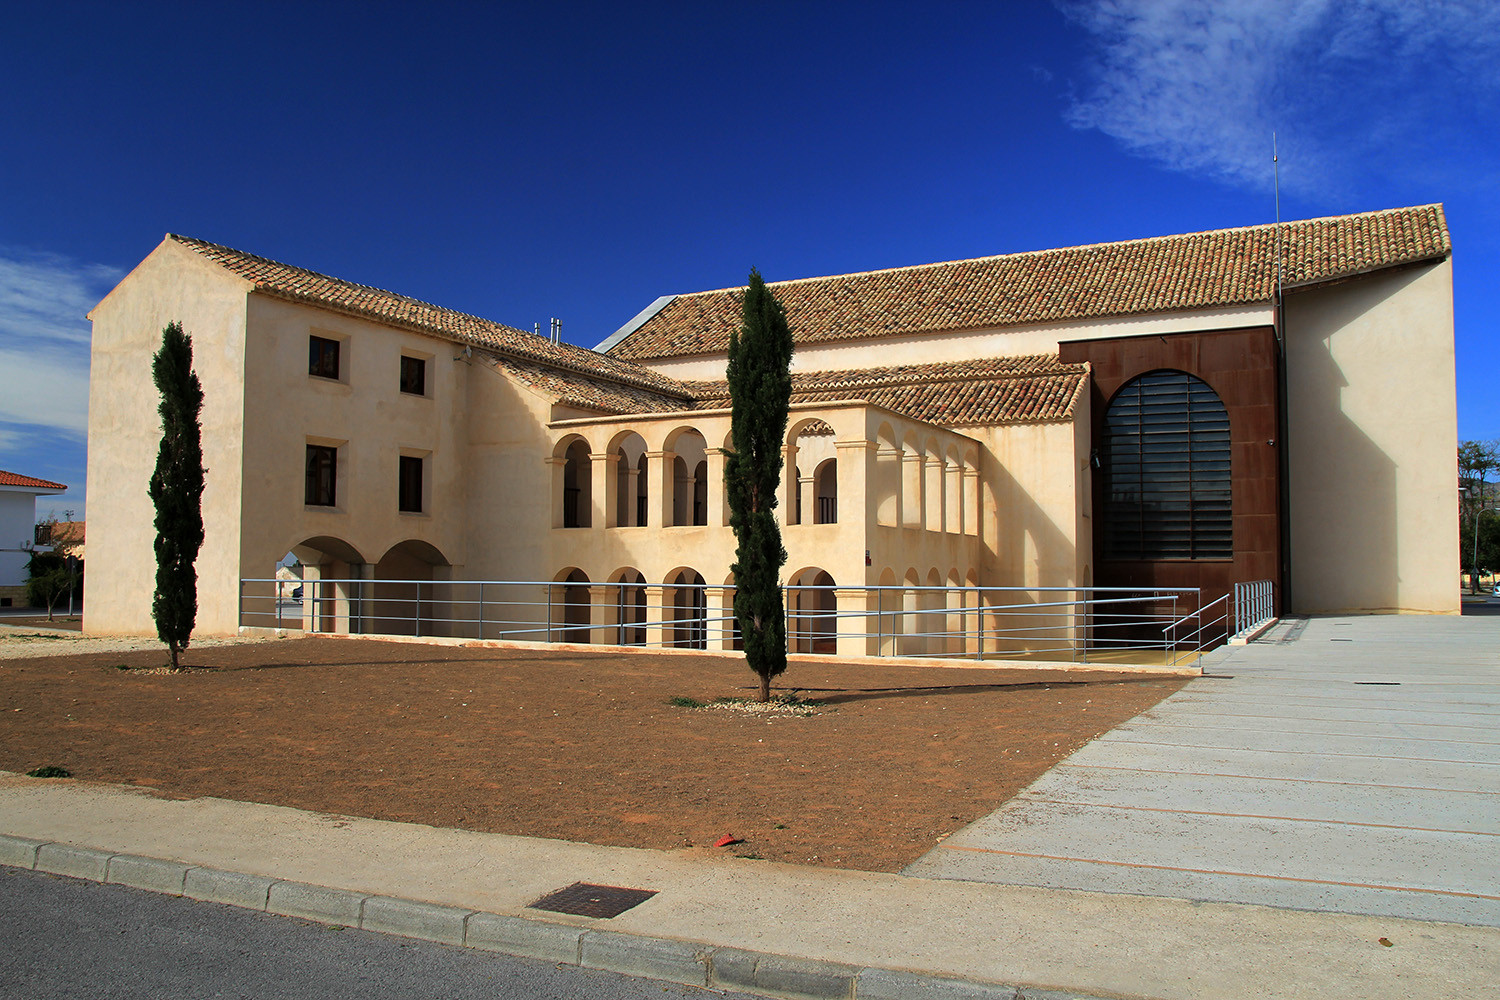 The Convent of San Francisco in Huéscar